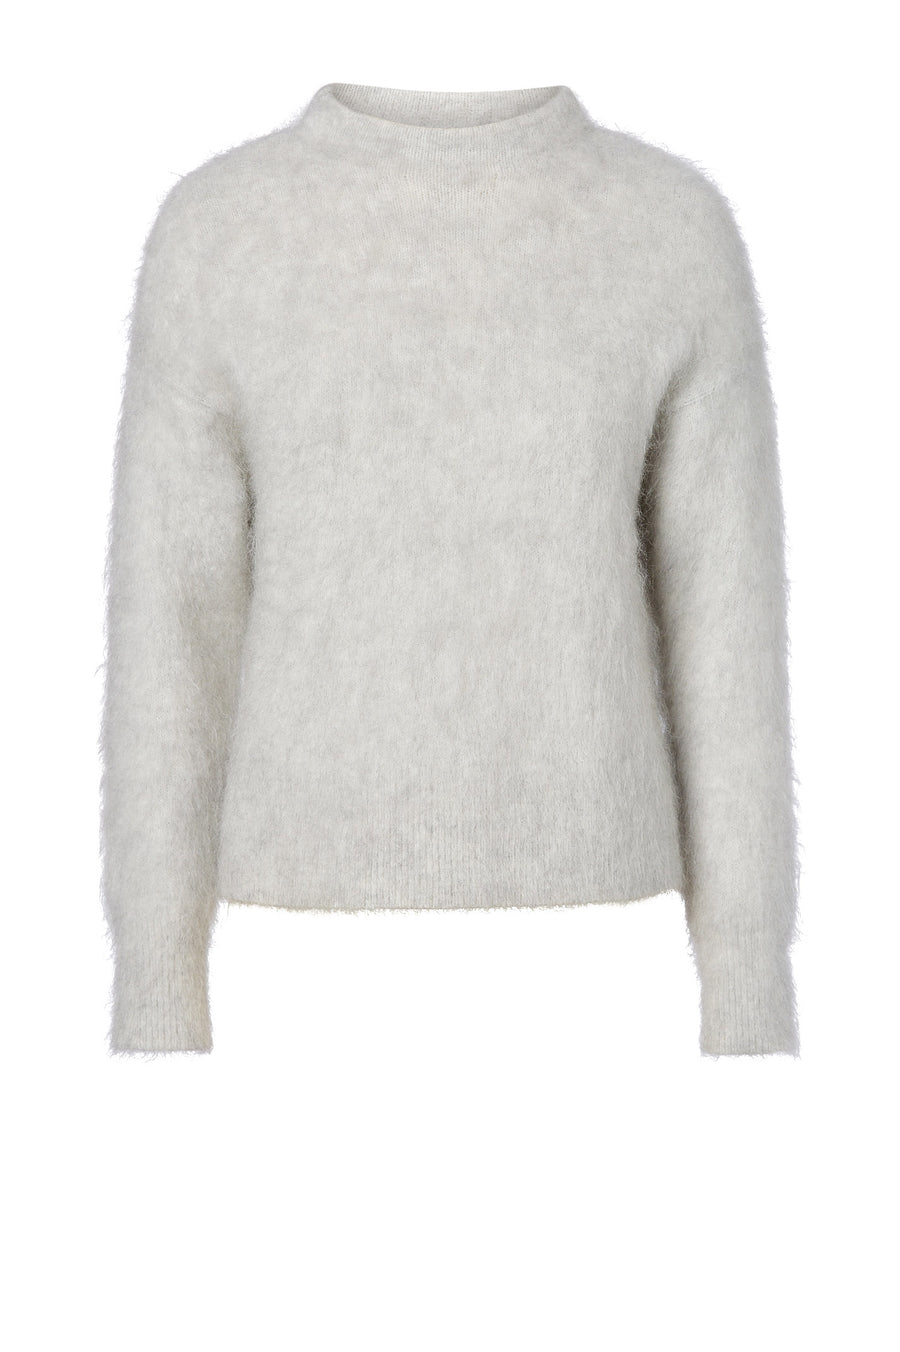 Brushed Mohair Sweater 5 Grey - Scanlan Theodore